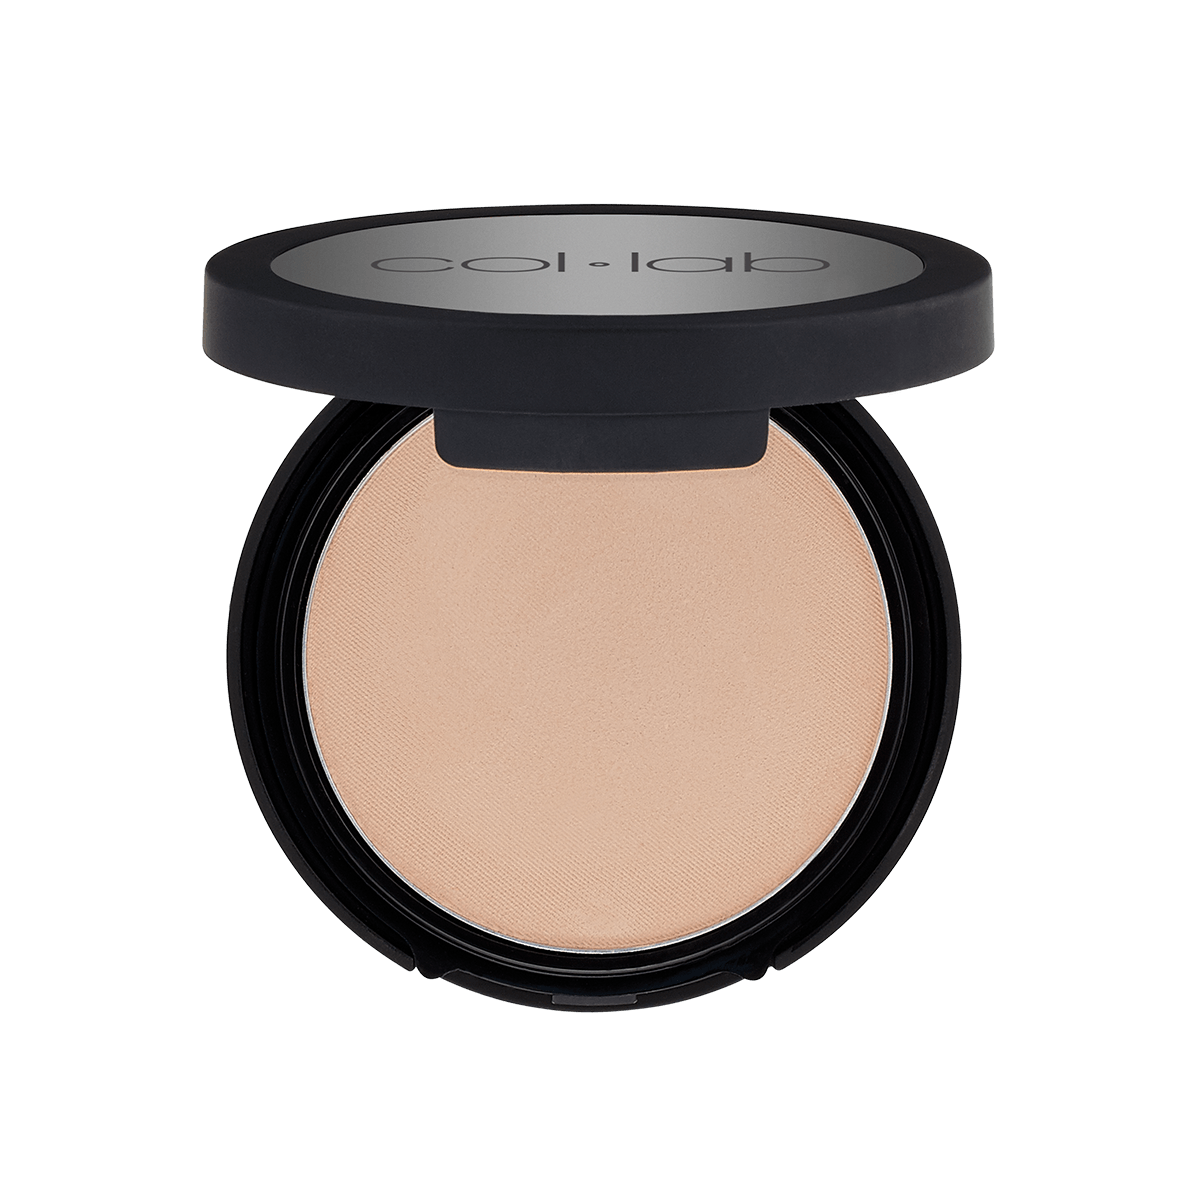 collab-kill-the-shine-pressed-powder-porcelain-open1.png